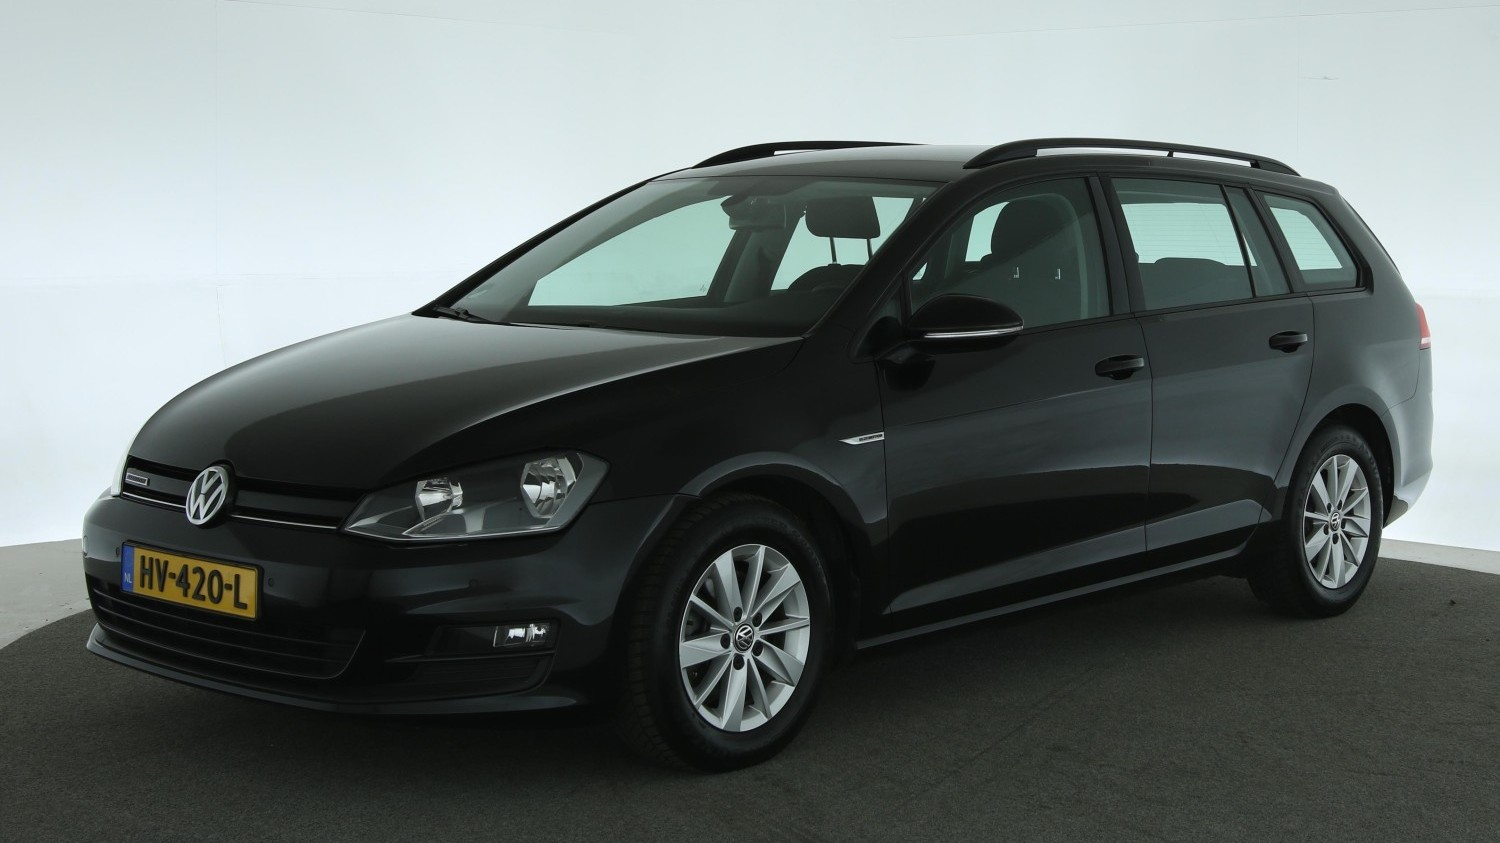 Volkswagen Golf Station 2016 HV-420-L 1